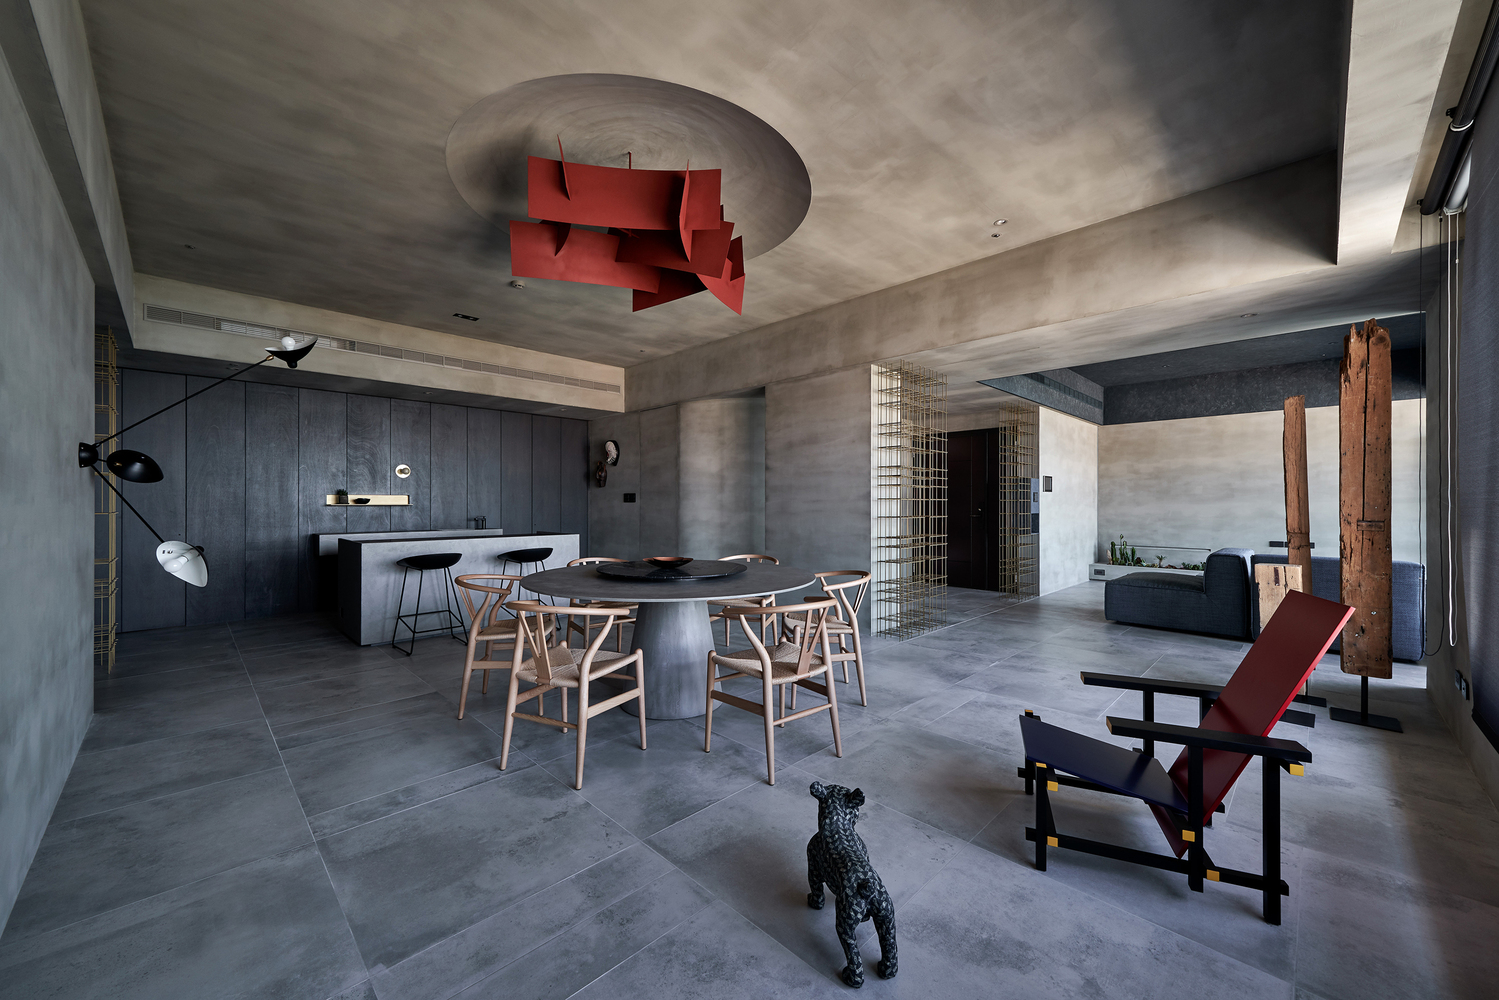 Concrete dining room with red pendant